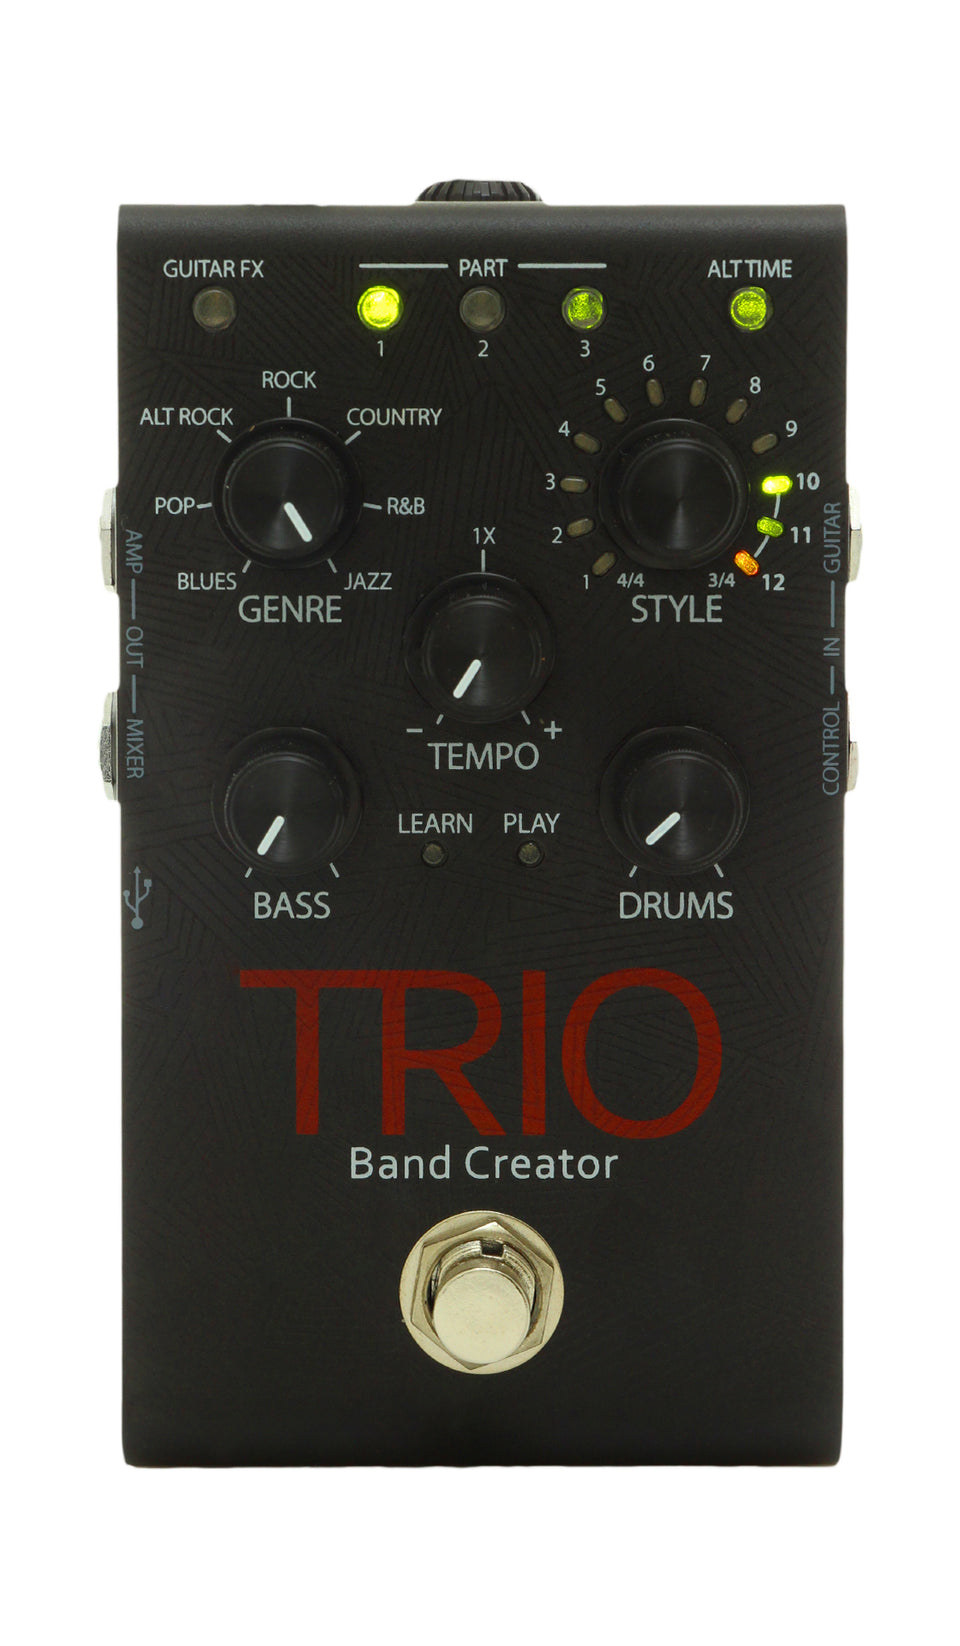 Digitech Trio Band Creator Guitar Effects Pedal